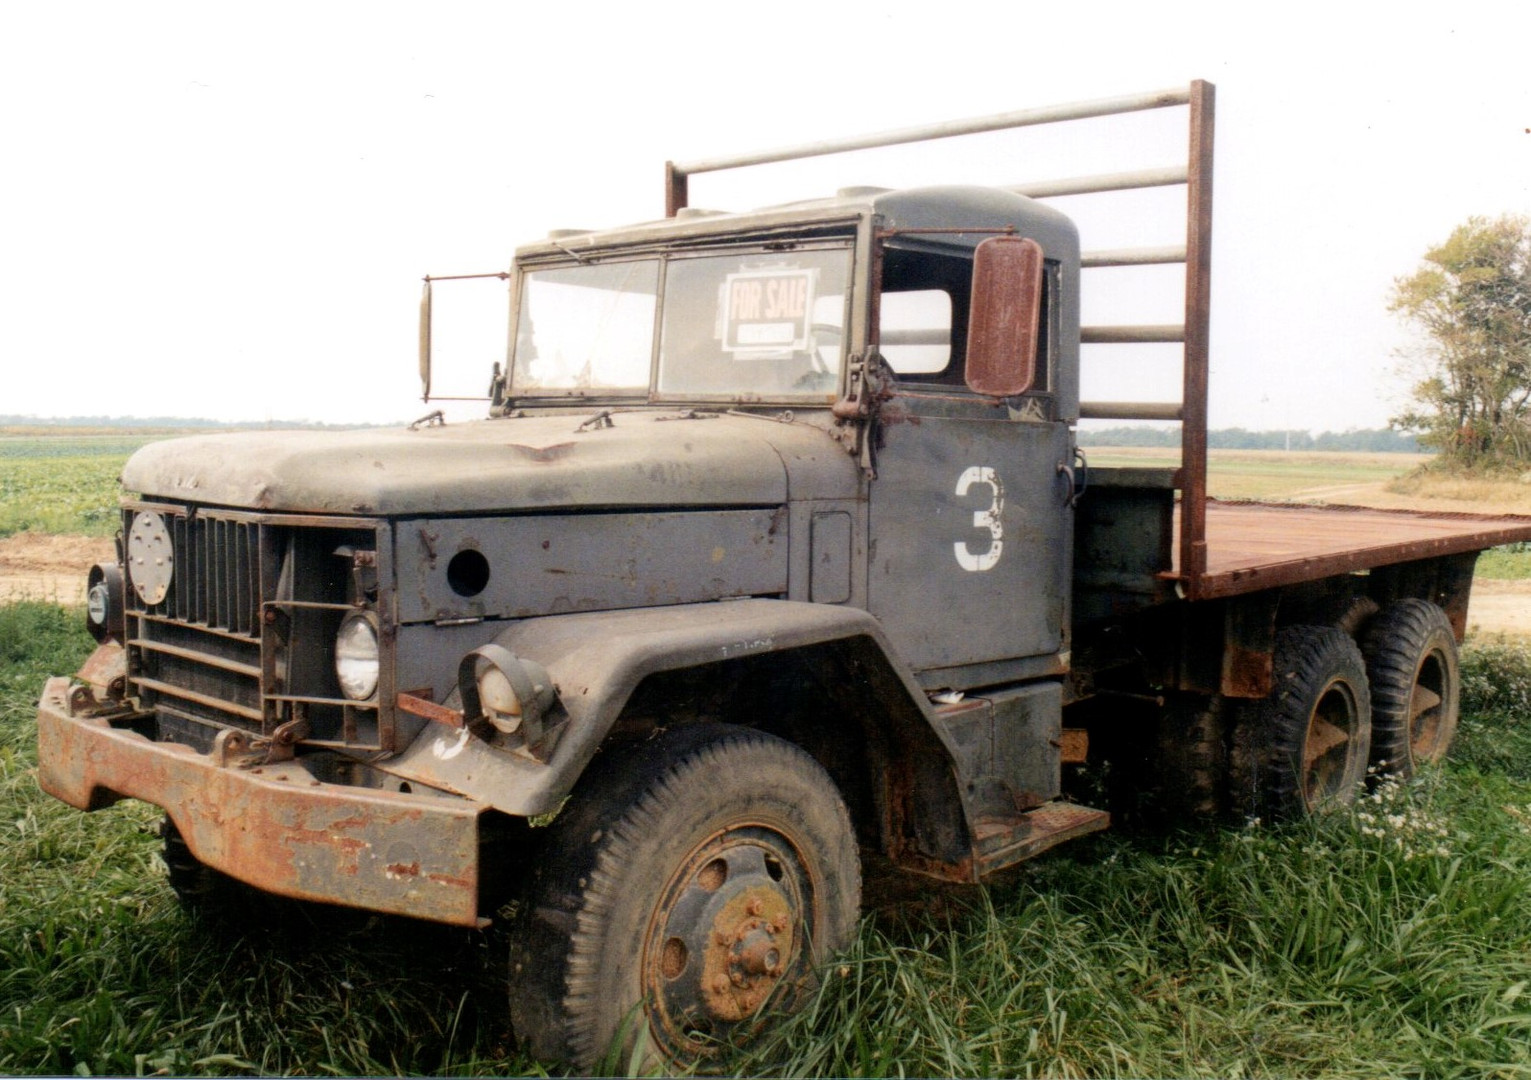 An old Army truck for sale at Punkinville